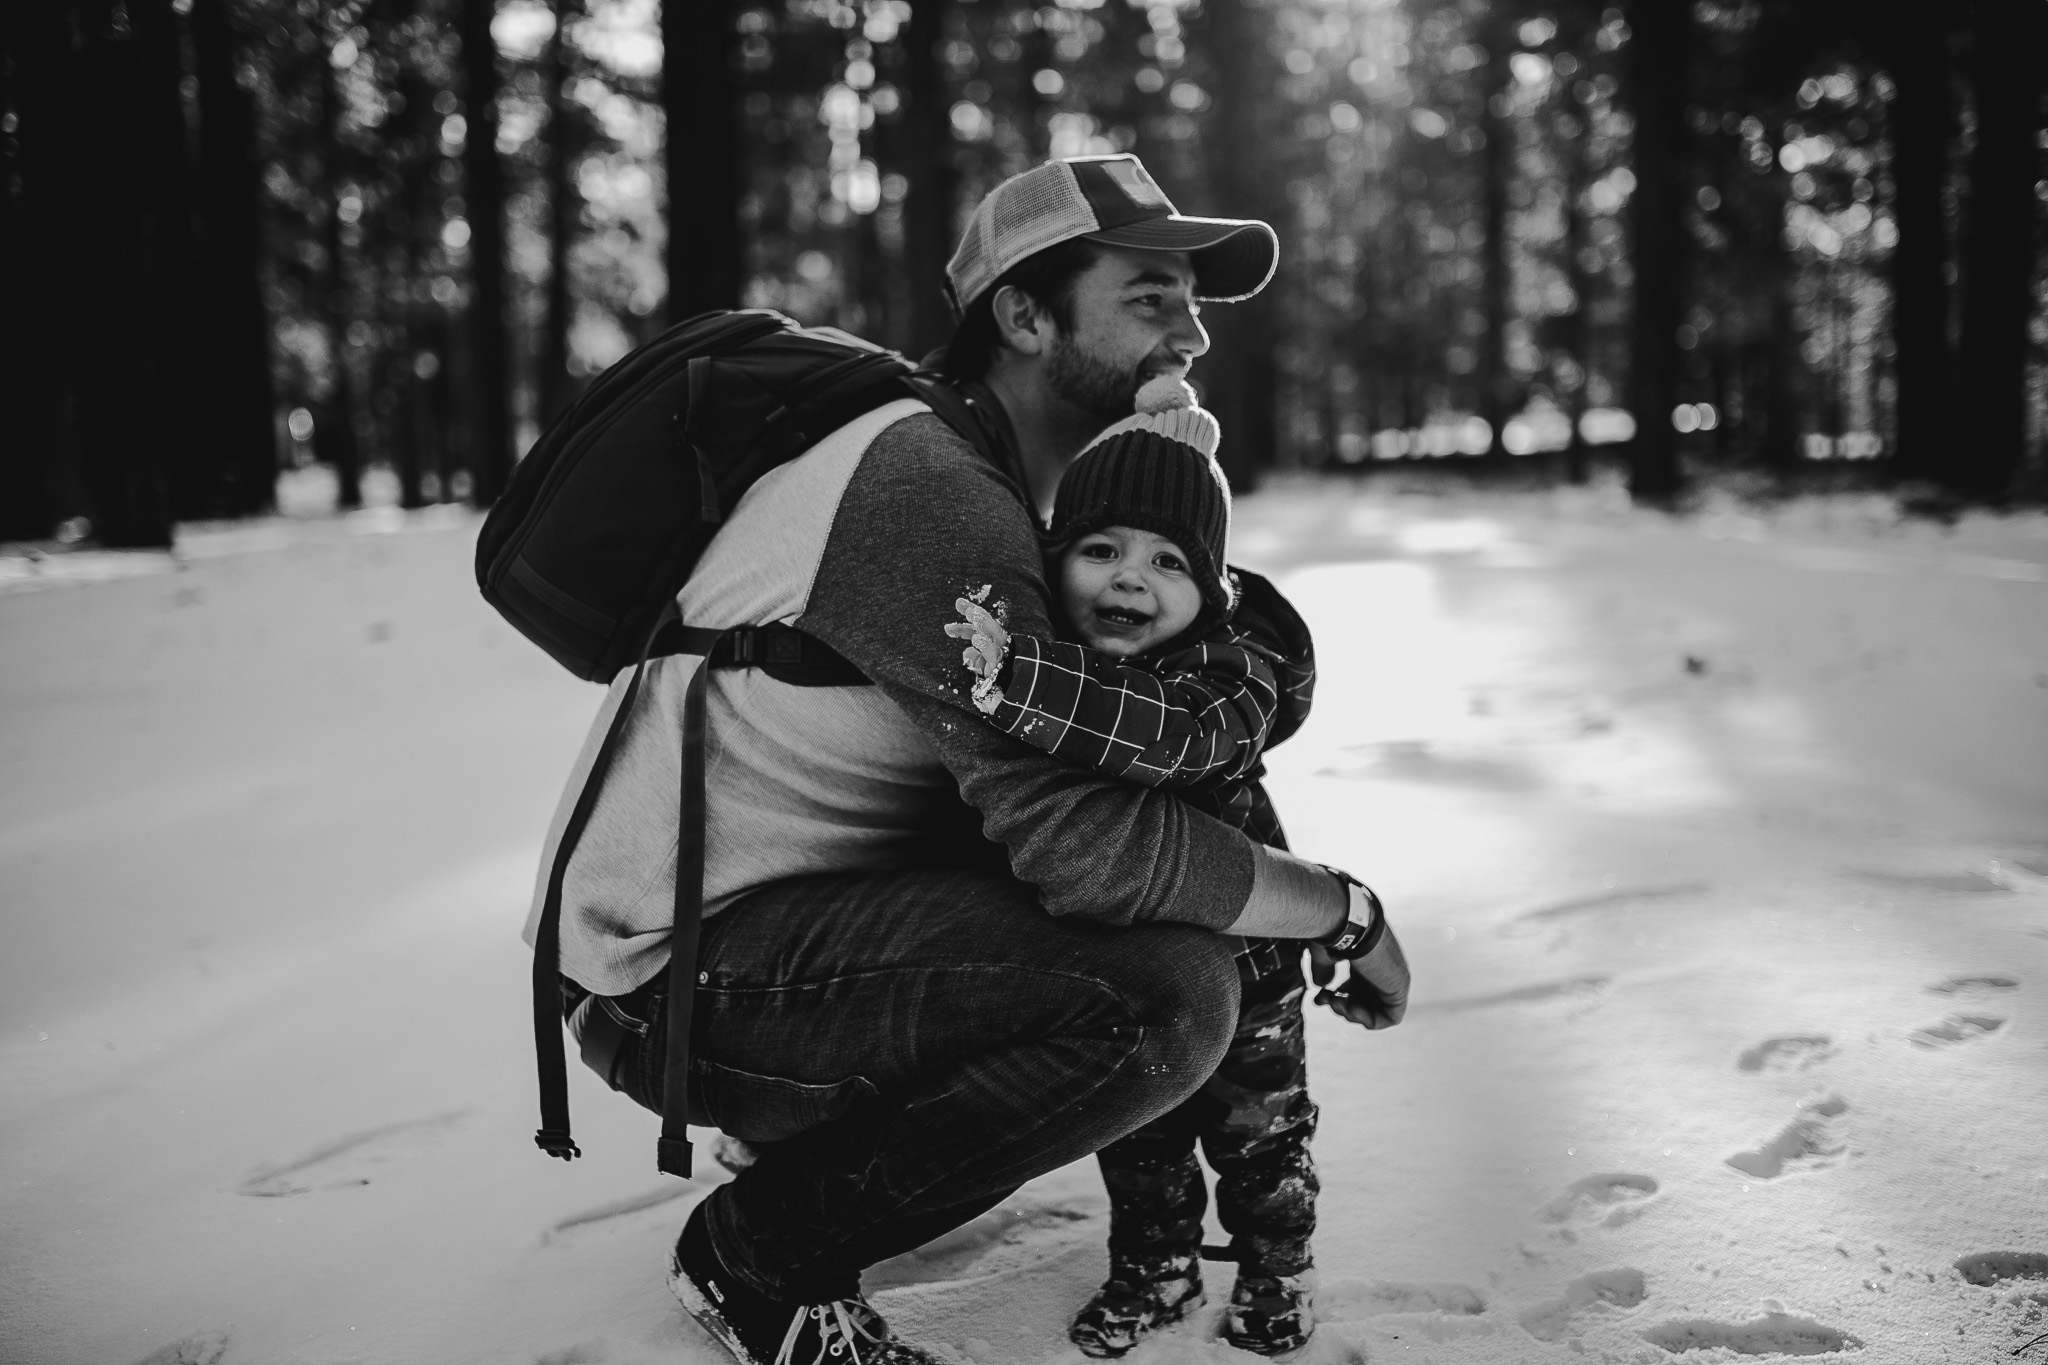 Archer Inspired Photography Family Road Trip Lifestyle Photos NorCal Sacramento South Lake Tahoe Reno Truckee Documentary Memories-90.jpg